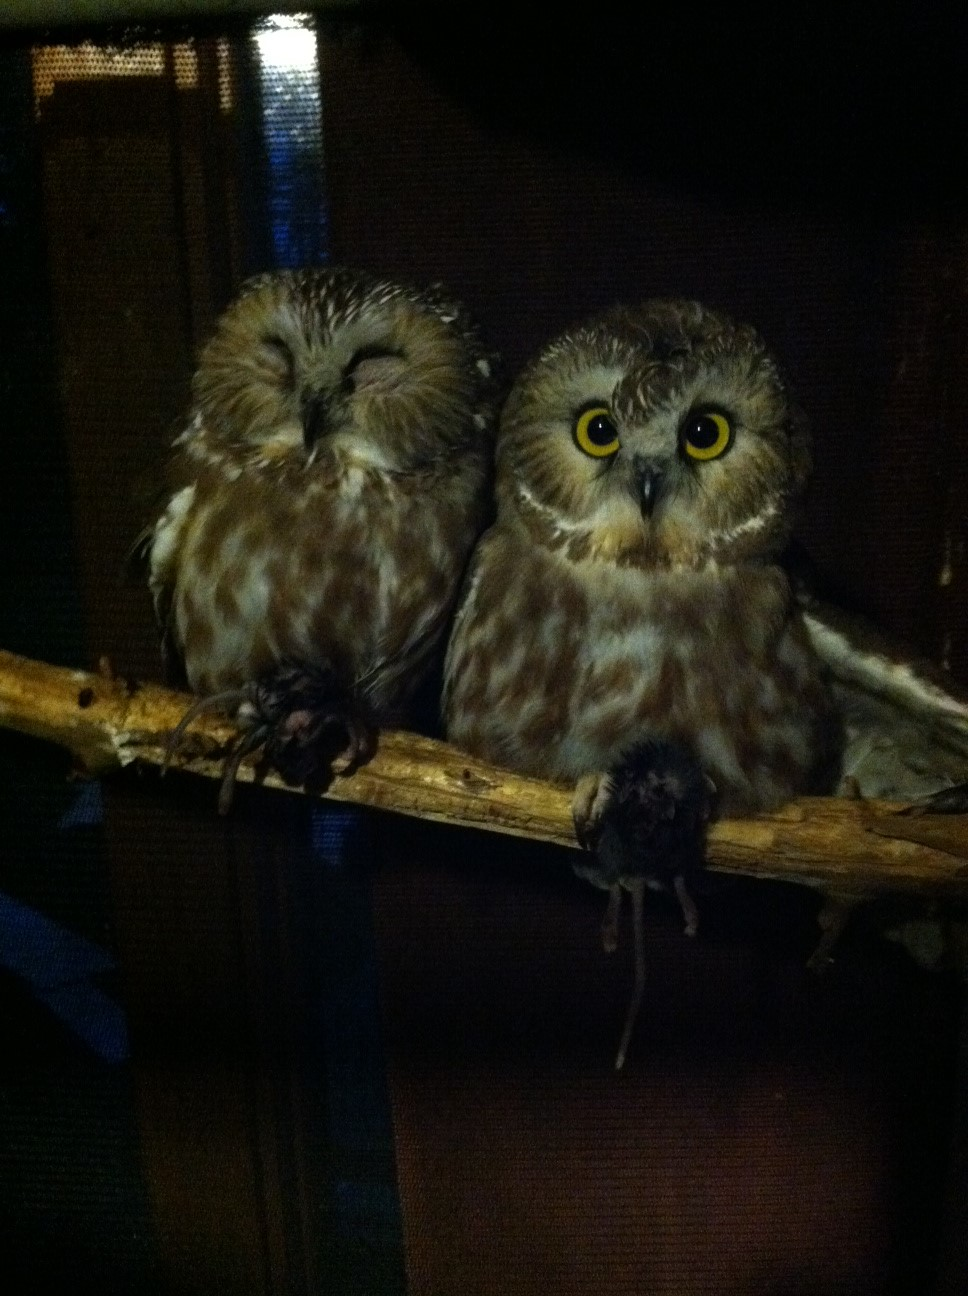 Saw whet owls by Dan Alempijevic.